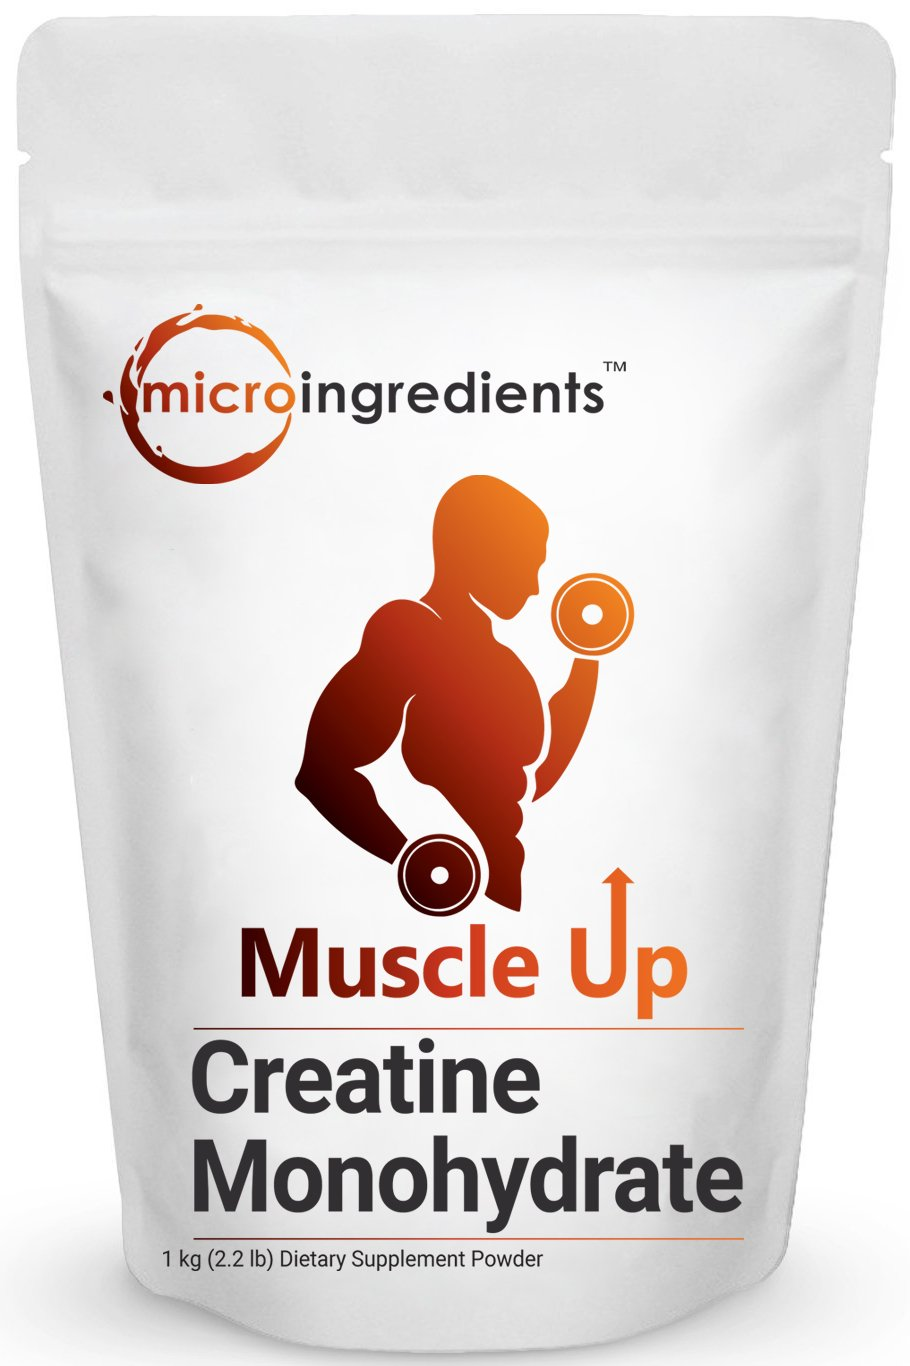 Pure Micronized Creatine Monohydrate Powder, 1 Kilogram, Maximizes Strength, Endurance Exercises and Productivity, Reduces Fatigue. Non-GMO and Gluten-Free.